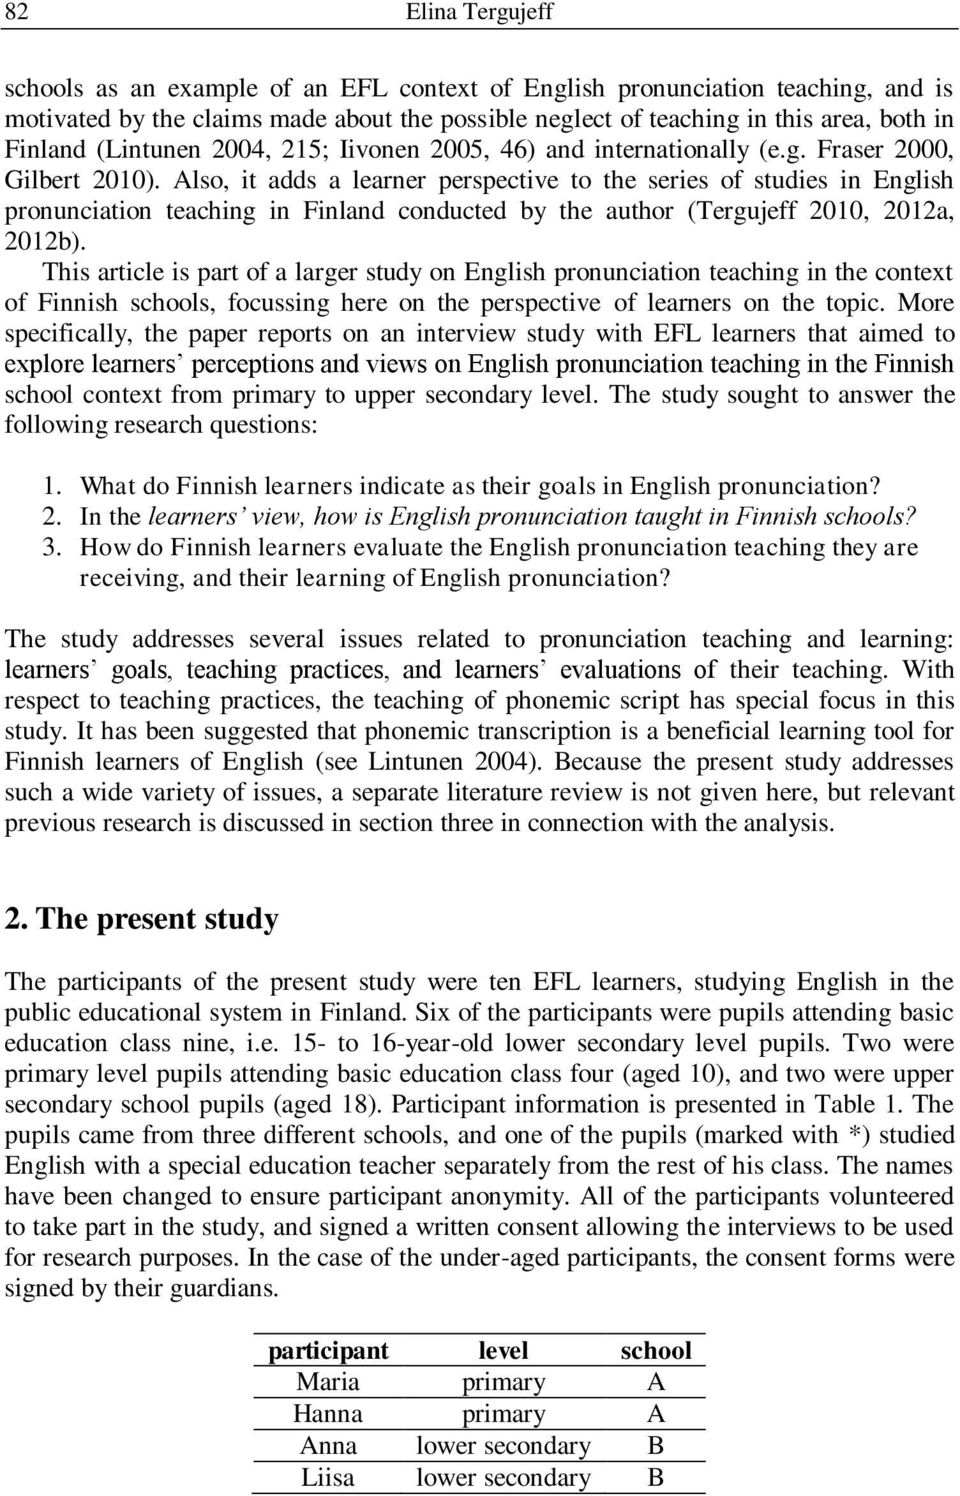 Also, it adds a learner perspective to the series of studies in English pronunciation teaching in Finland conducted by the author (Tergujeff 2010, 2012a, 2012b).